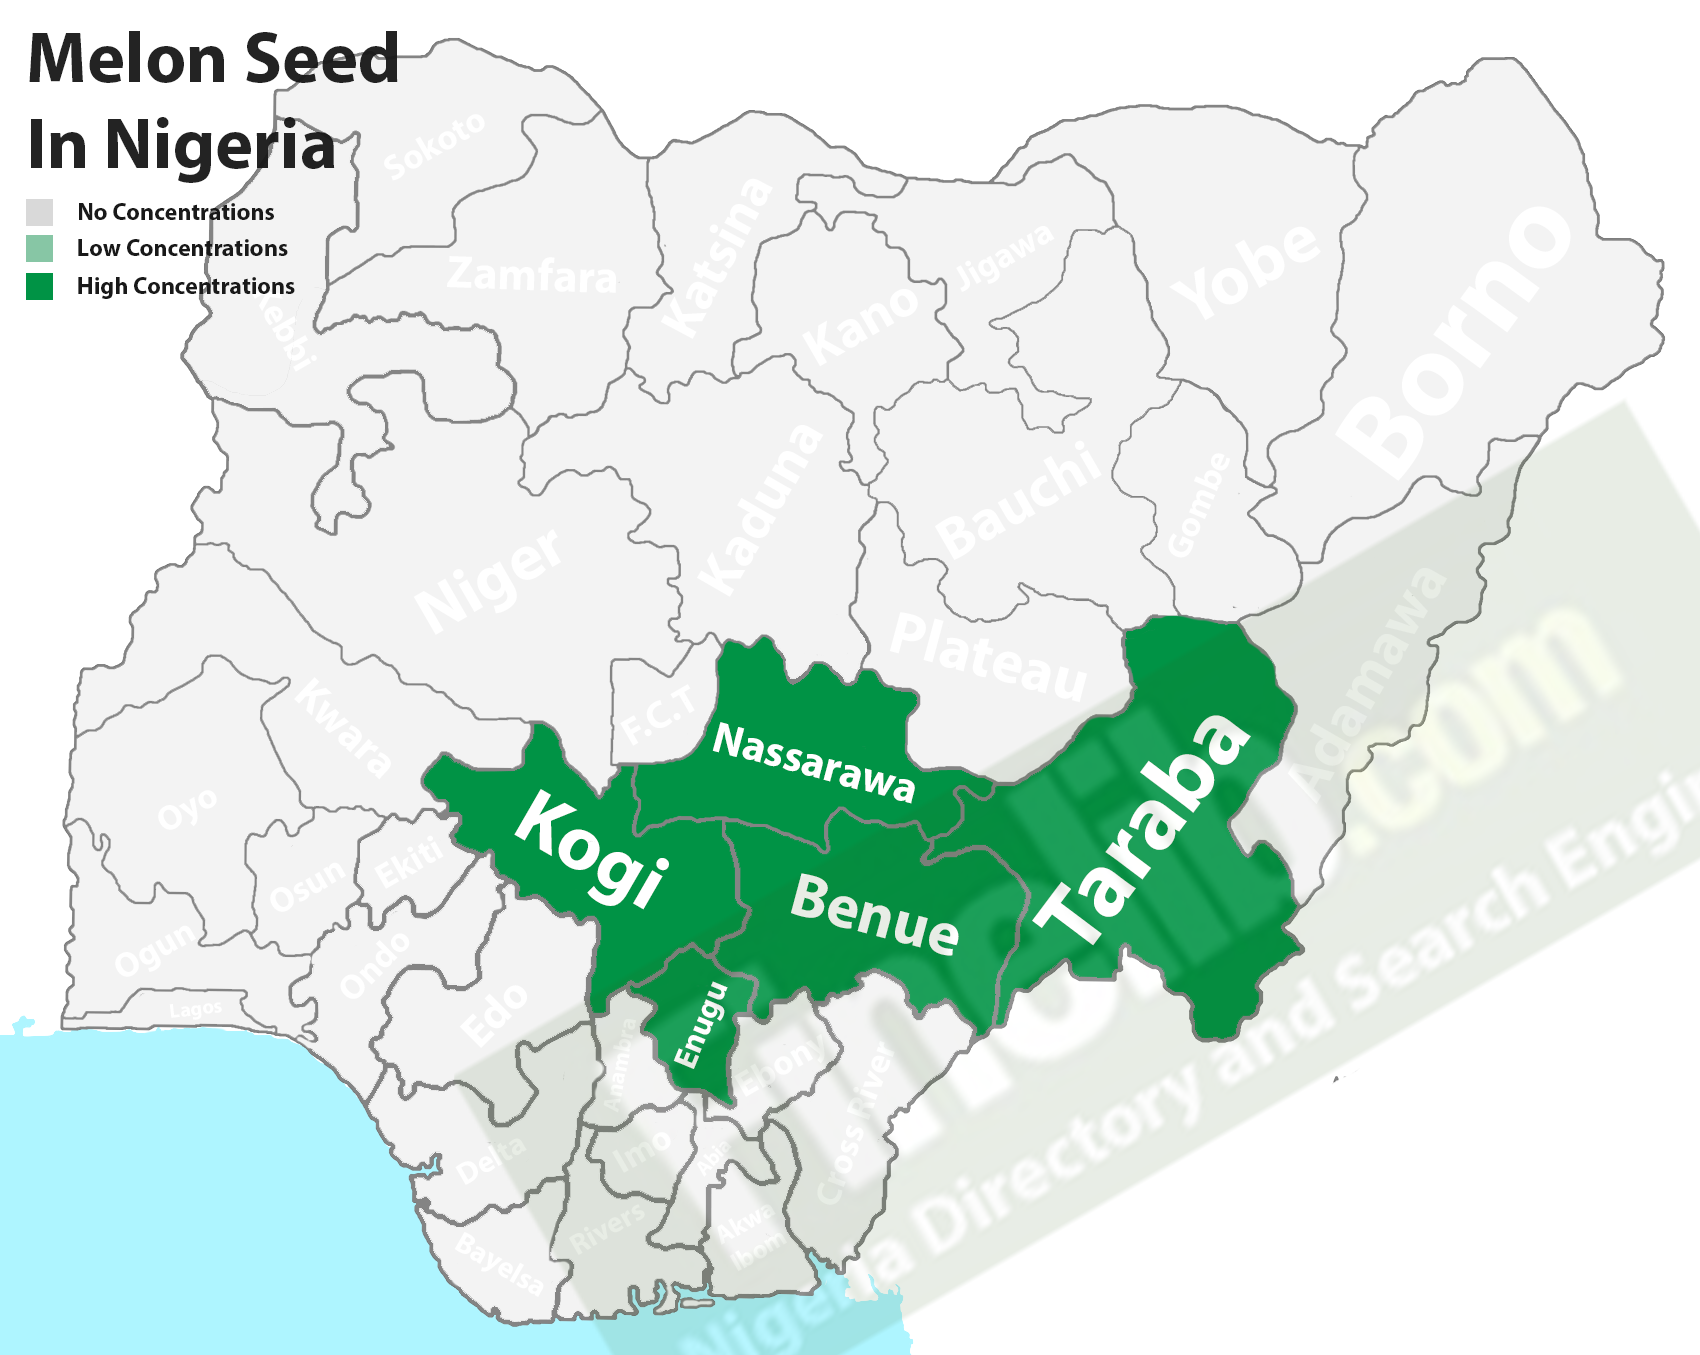 Melon seed producing states in Nigeria